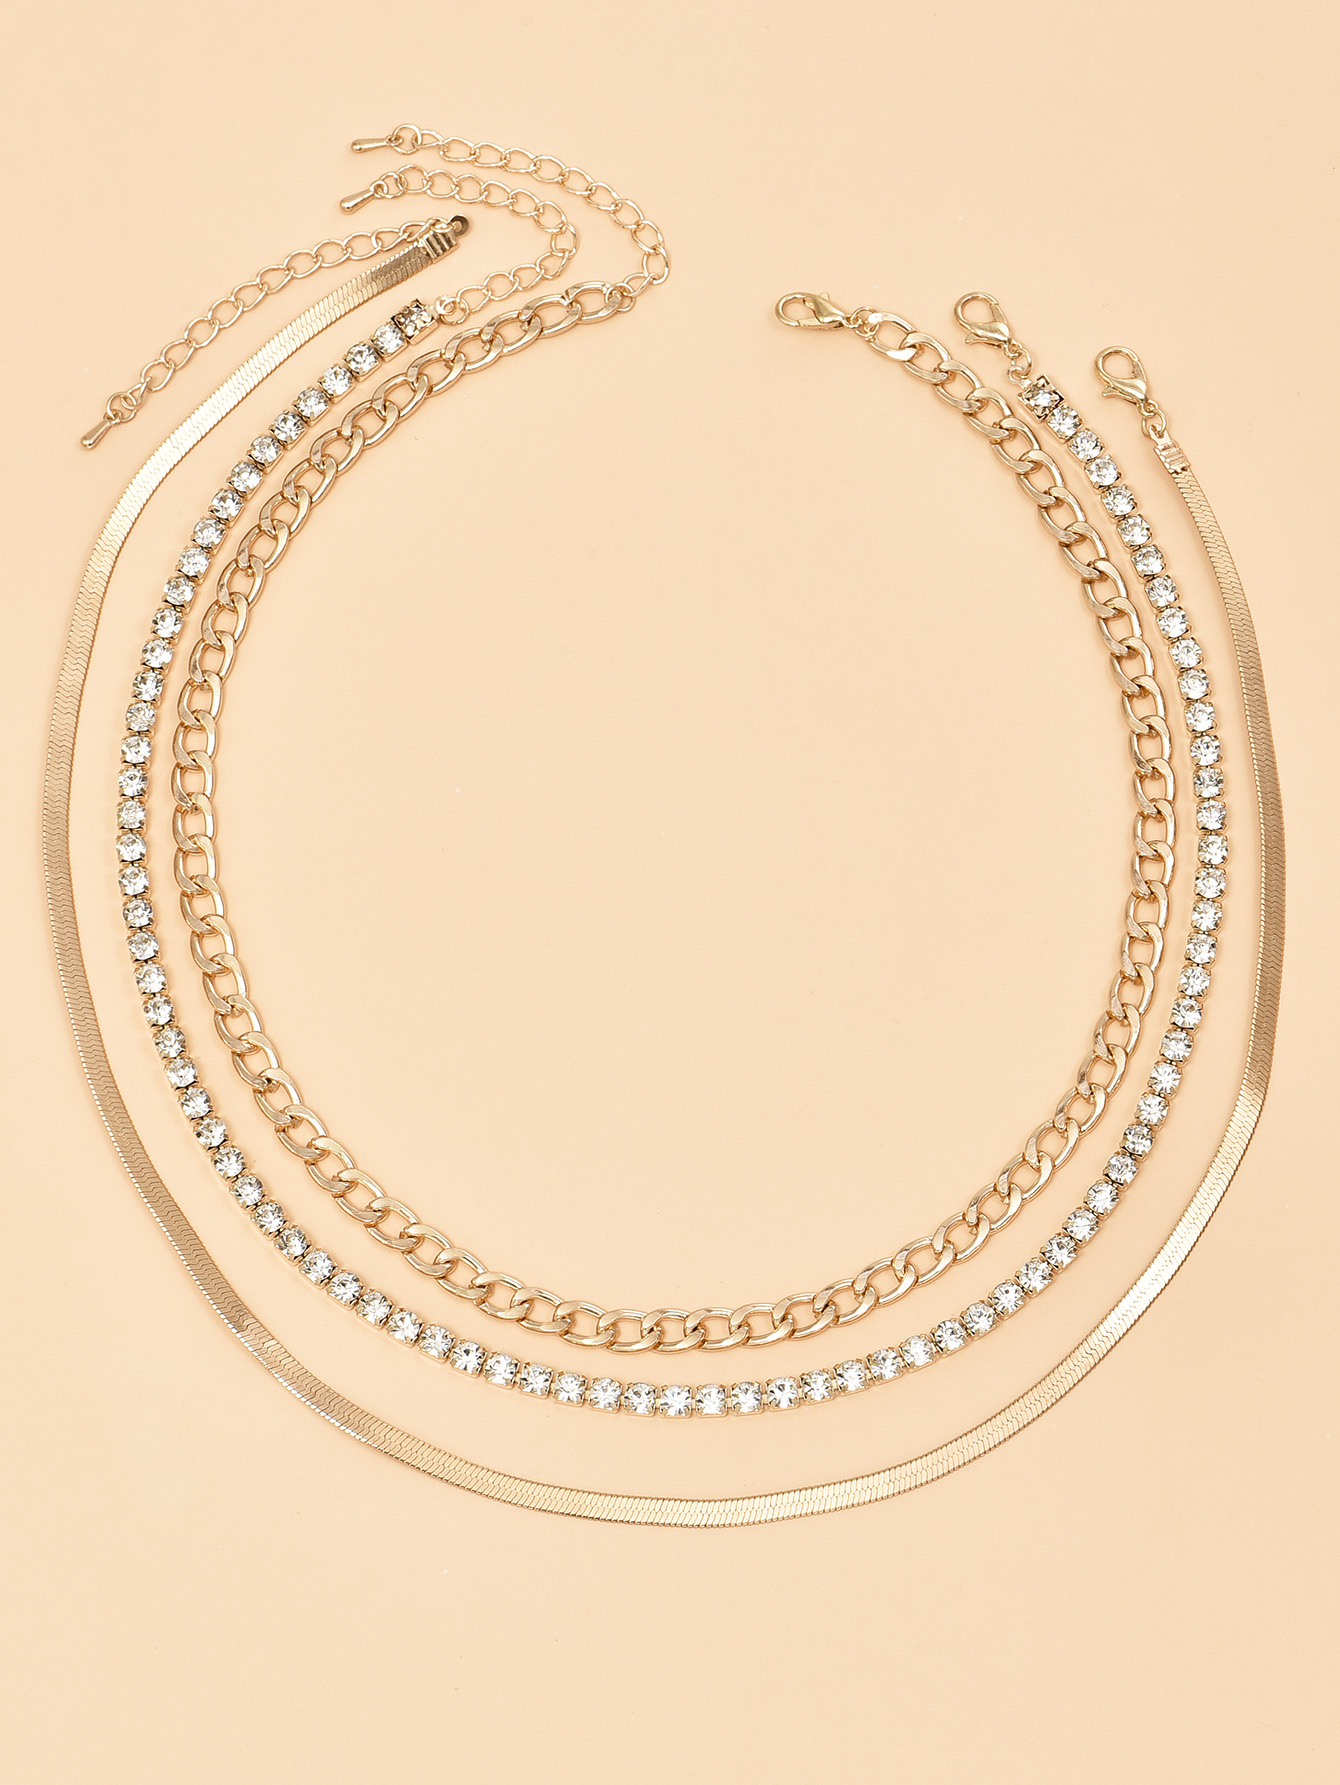 Popular alloy heavy metal chain womens multilayer necklace   NHAJ254156